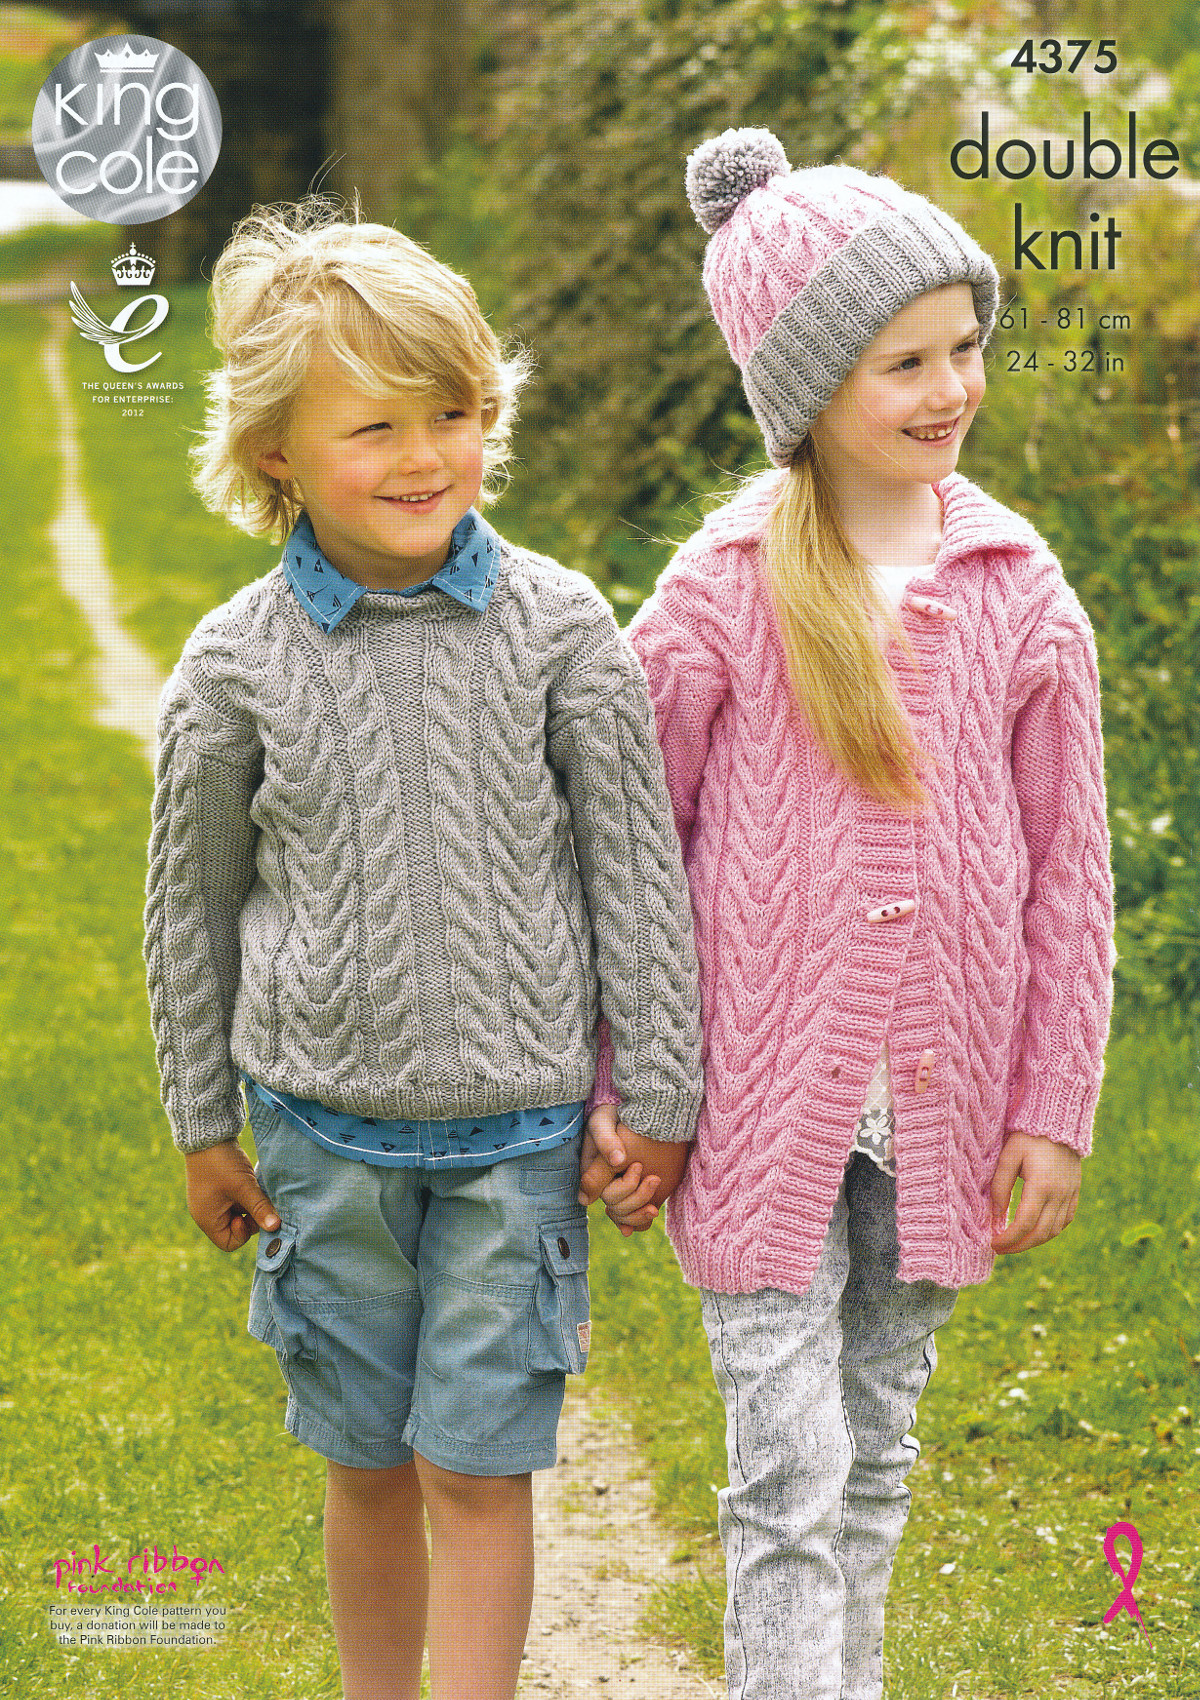 King Cole Girls Boys Double Knitting Pattern Cable Knit Sweater ...